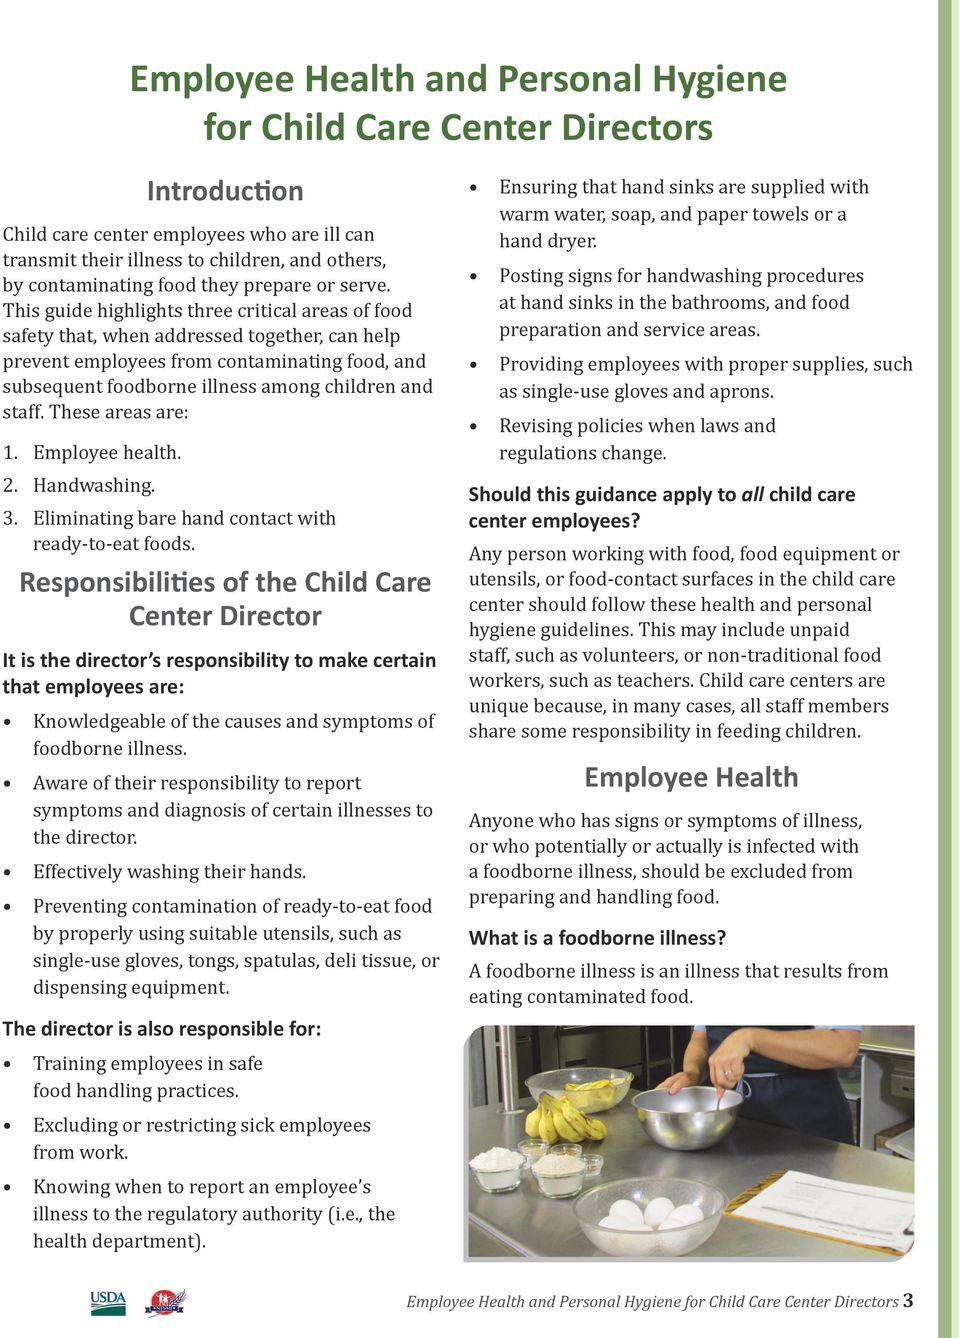 This guide highlights three critical areas of food safety that, when addressed together, can help prevent employees from contaminating food, and subsequent foodborne illness among children and staff.